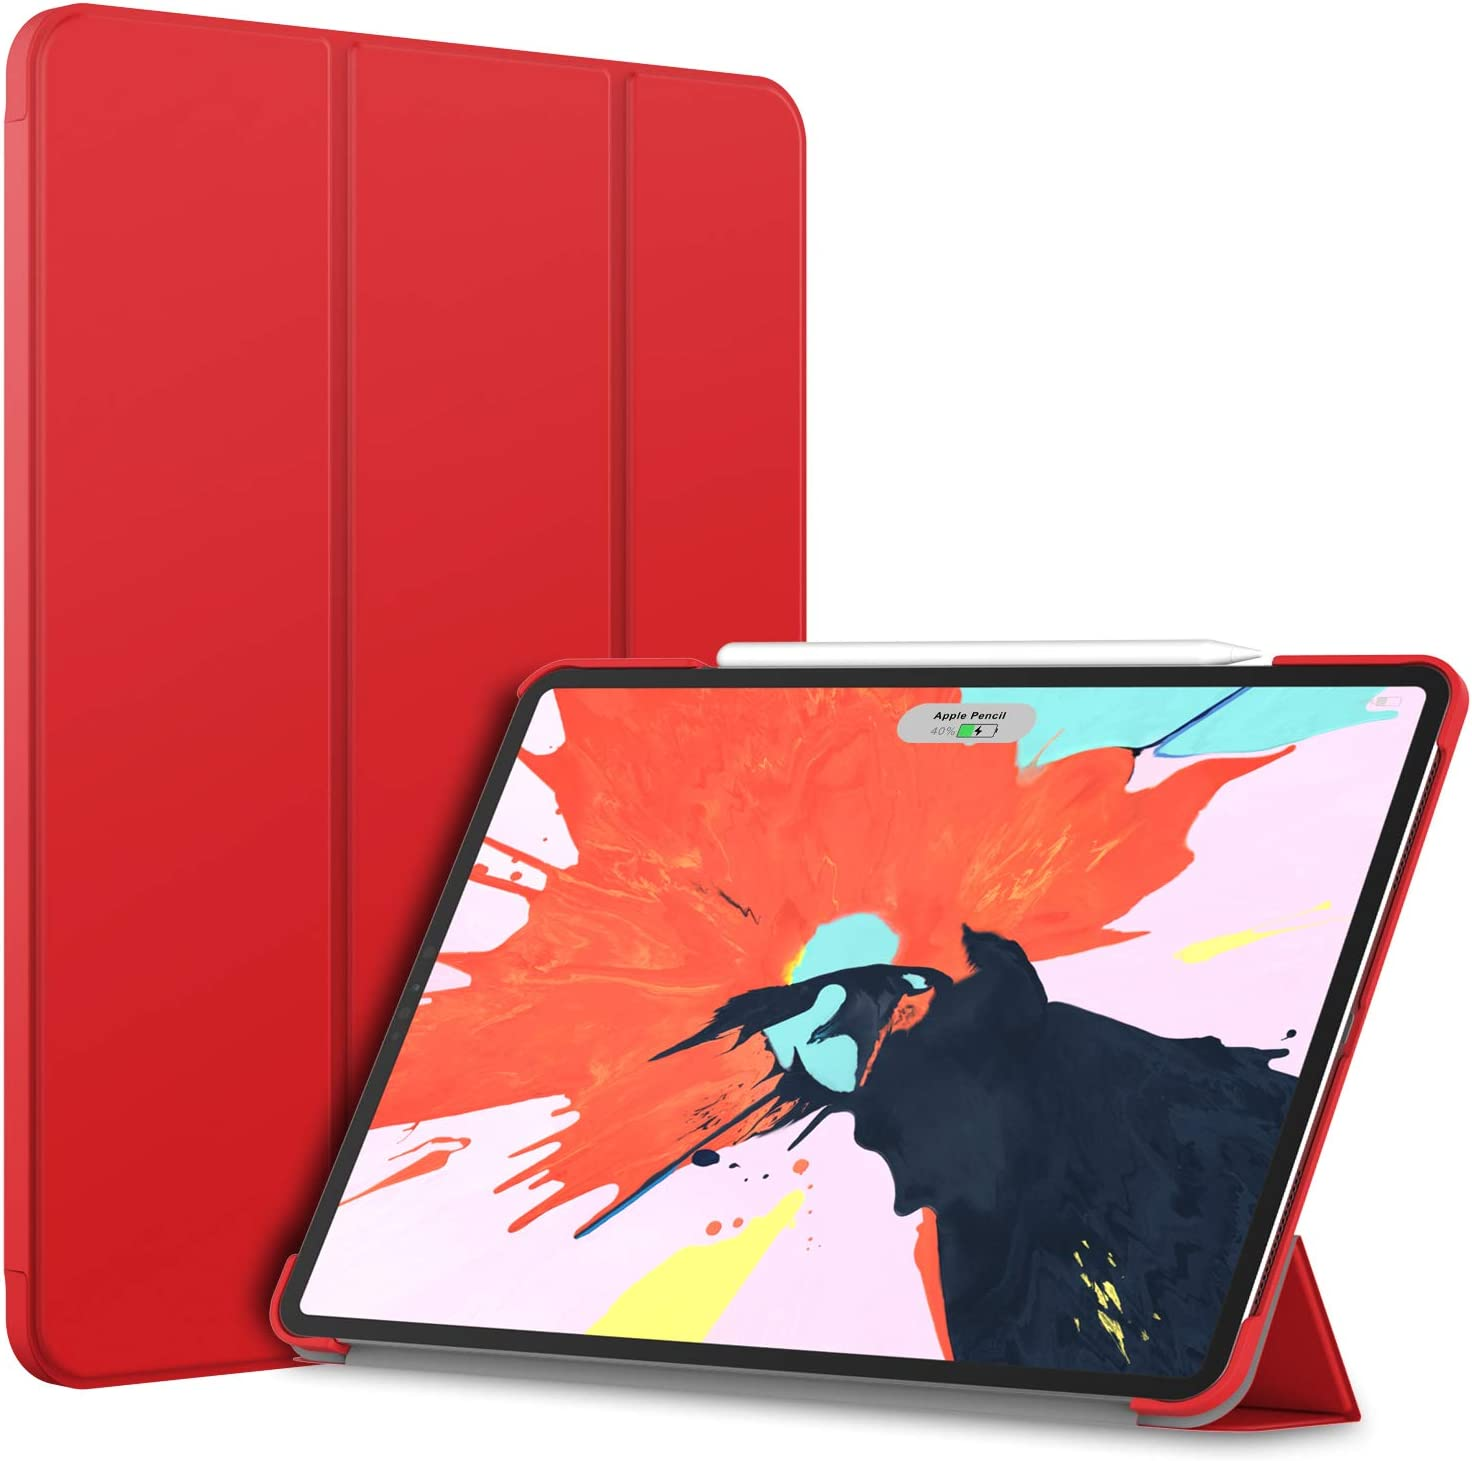 JETech Case for iPad Pro 12.9-Inch (2020 / 2018 Model), Compatible with Pencil, Cover Auto Wake/Sleep, Red